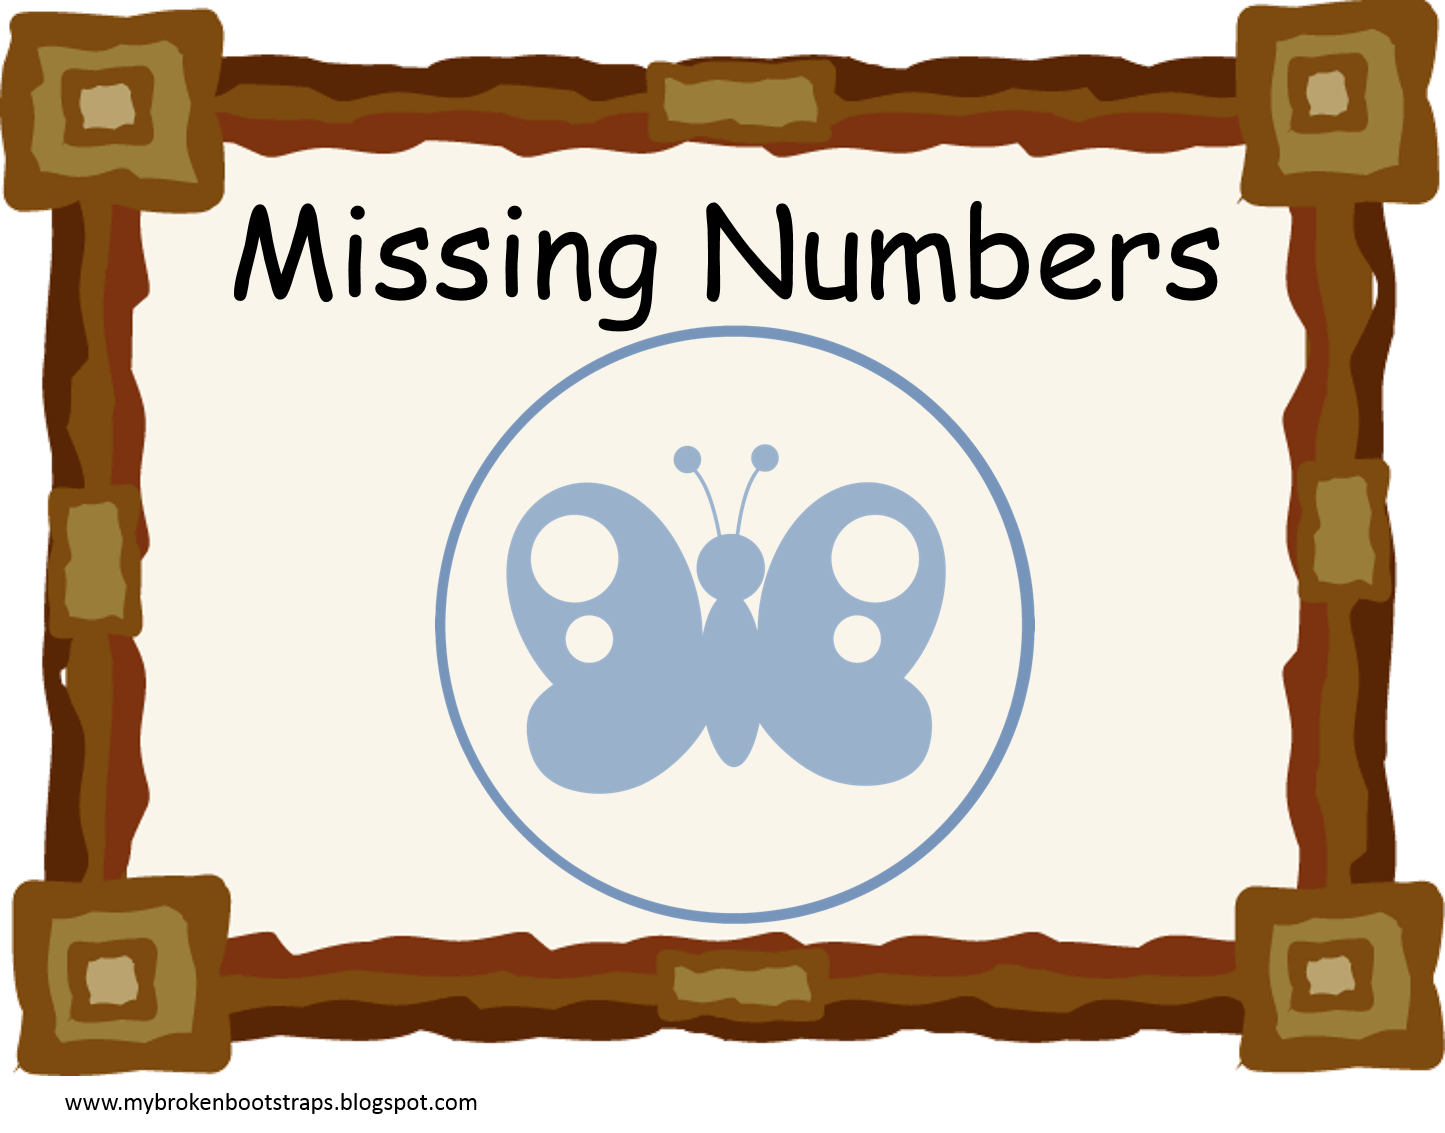 http://www.teacherspayteachers.com/Product/Missing-Numbers-to-120-1577631